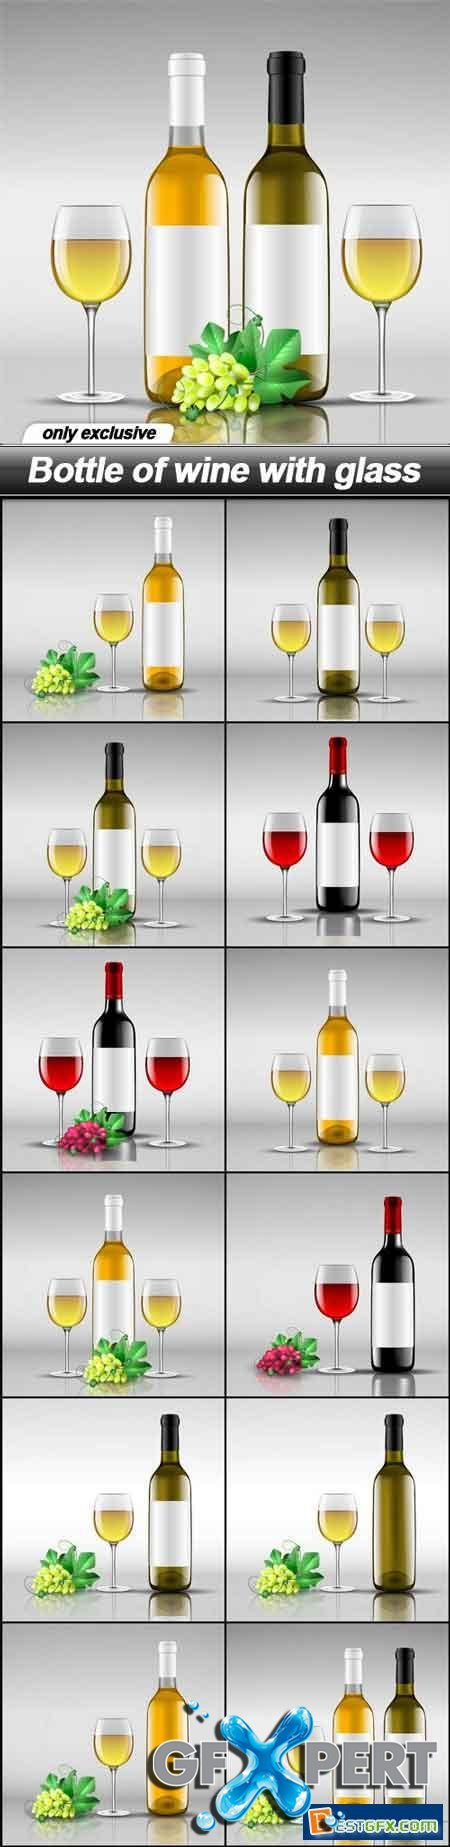 Bottle of wine with glass - 13 EPS